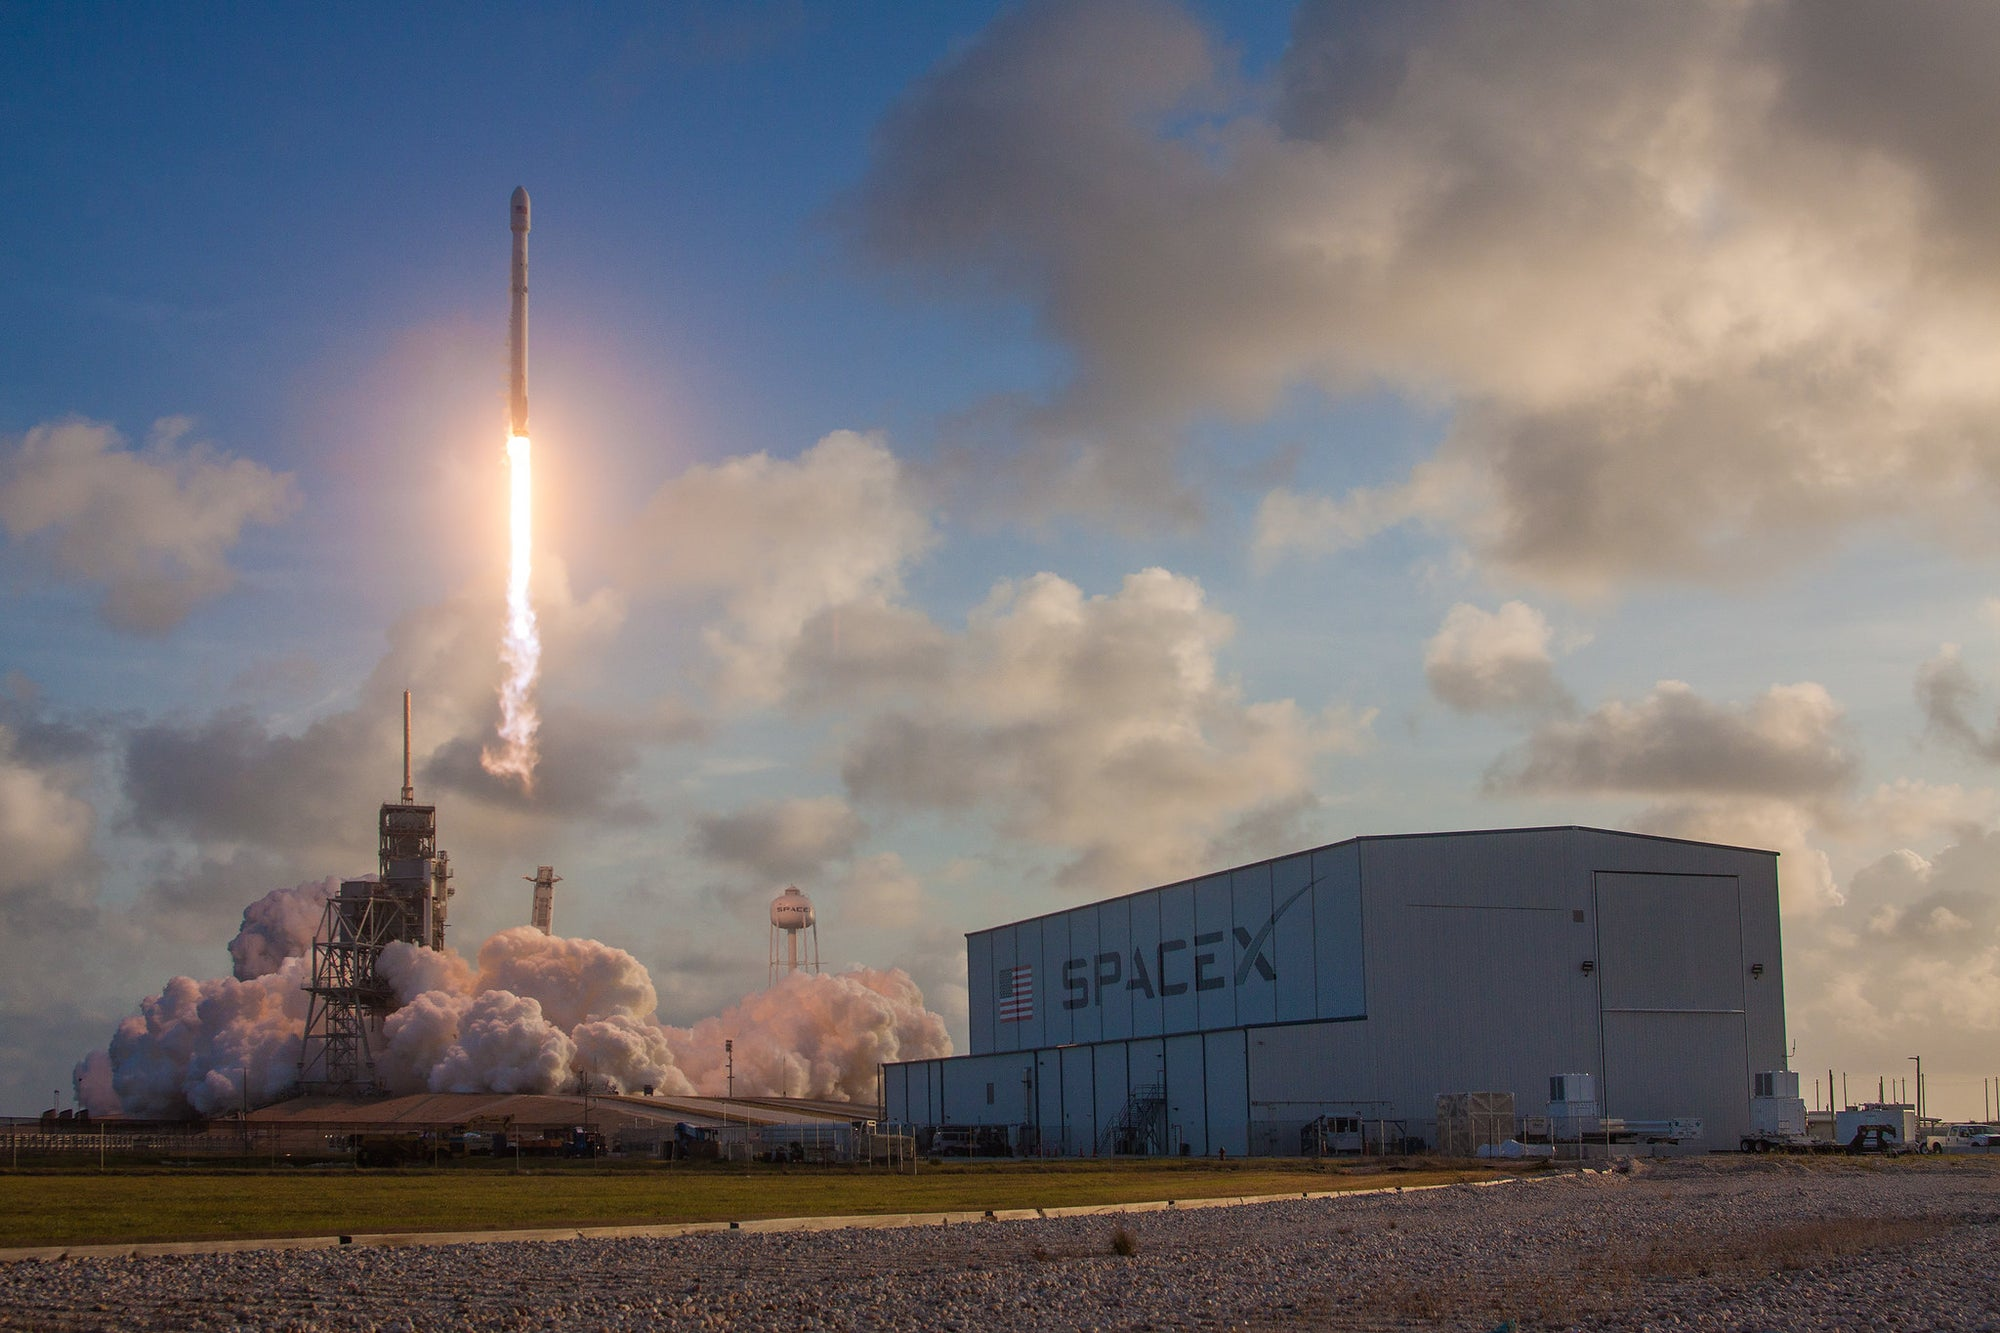 SpaceX signs deal to deploy internet-beaming SpaceBees for Swarm Technologies